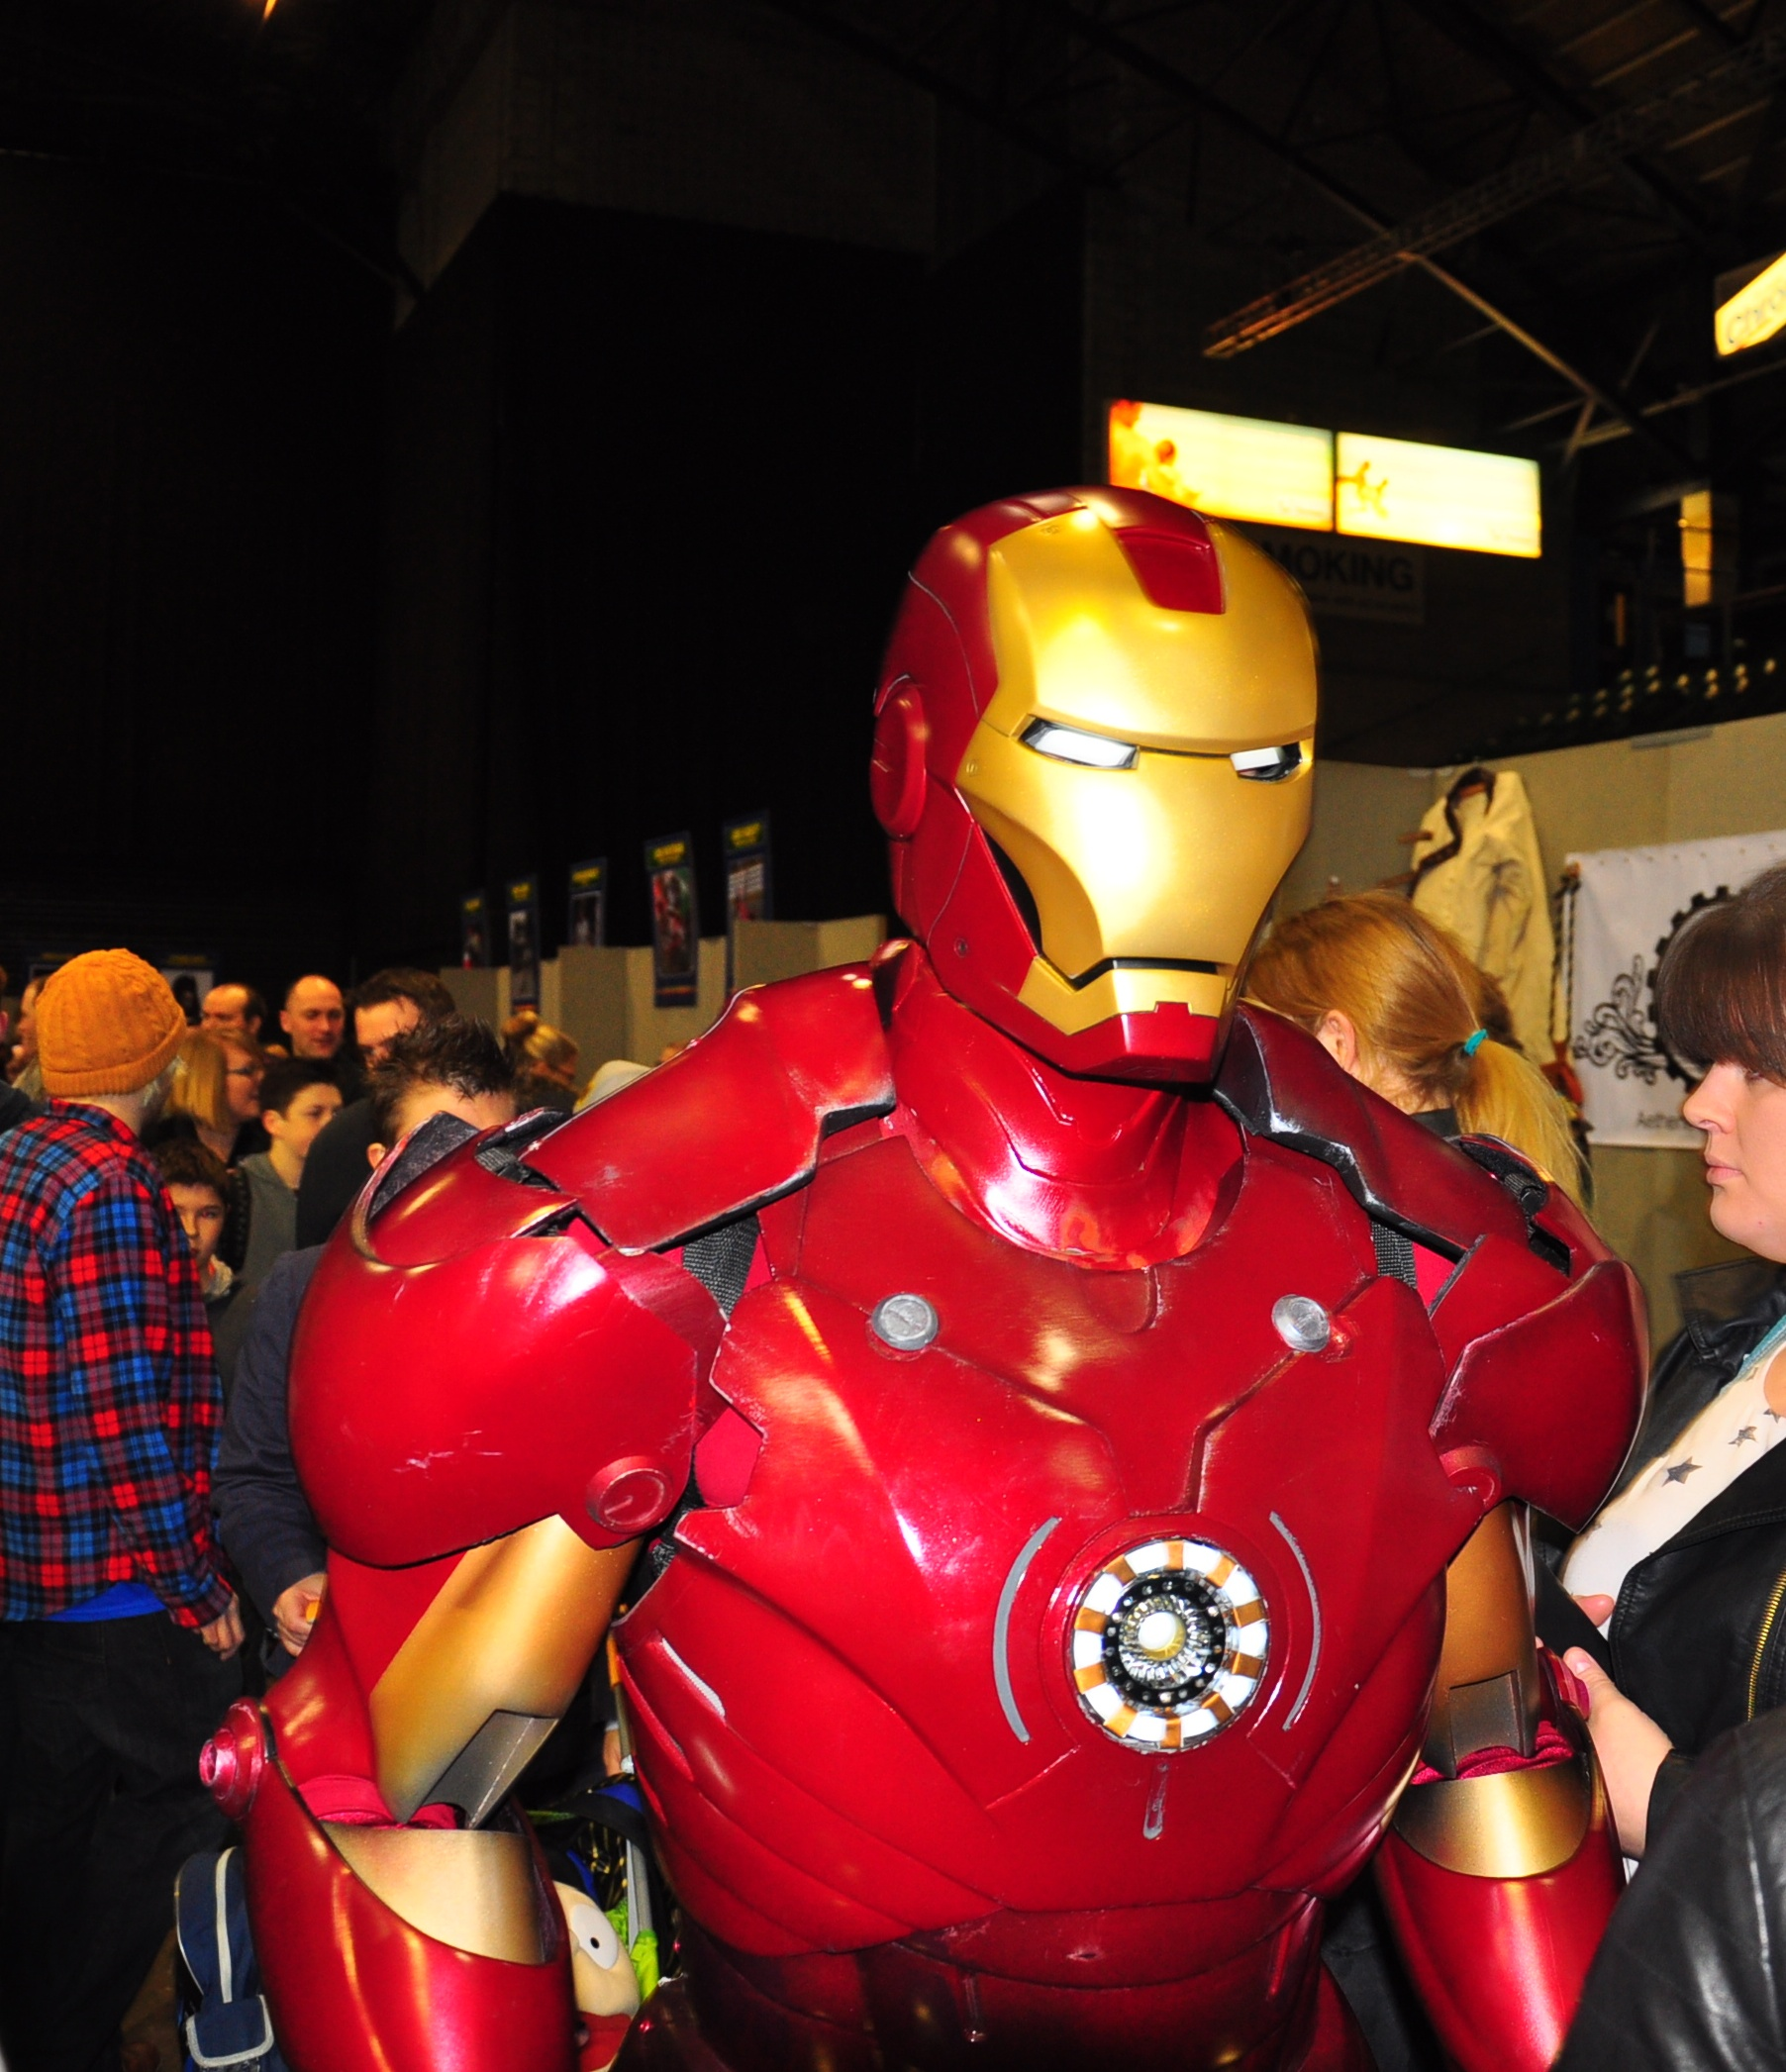 Iron Man mingles with fans at the film and comic convention. Picture by Paul Vasey